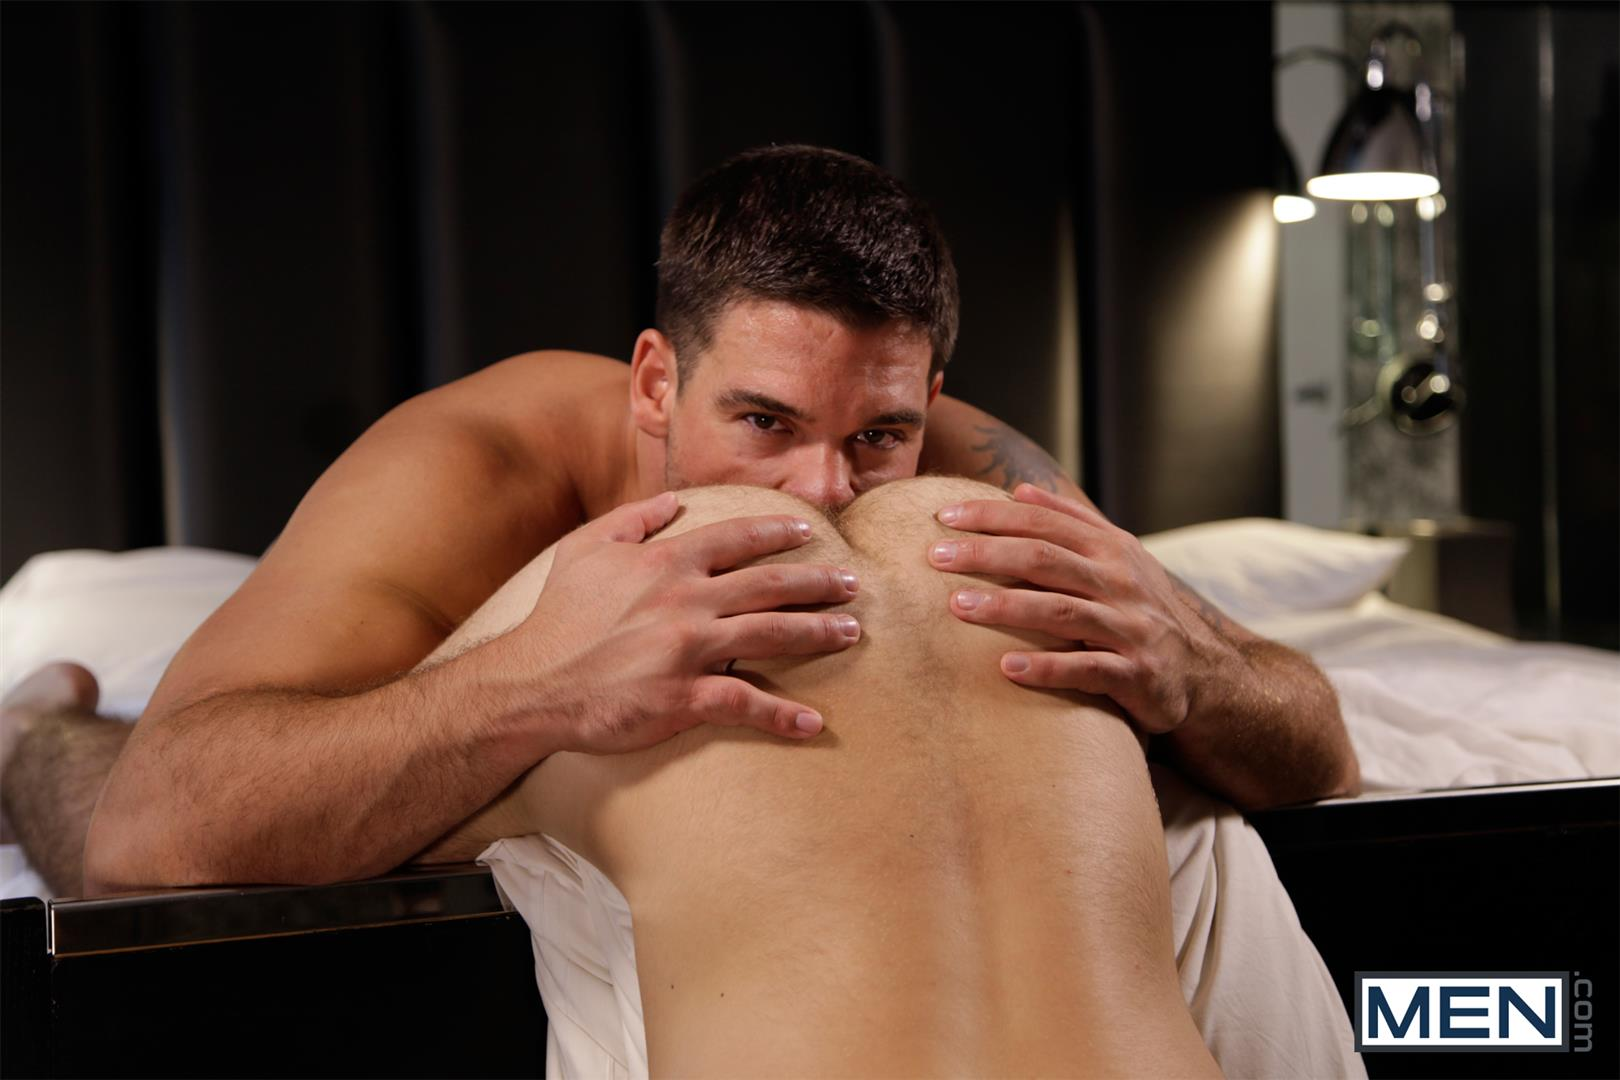 Men-Derek-Atlas-and-Jimmy-Fanz-Hairy-Muscle-Hunks-Big-Cocks-Fucking-Amateur-Gay-Porn-13 Hairy Muscle Hunk Derek Atlas Bottoms For Big Cock Jimmy Fanz